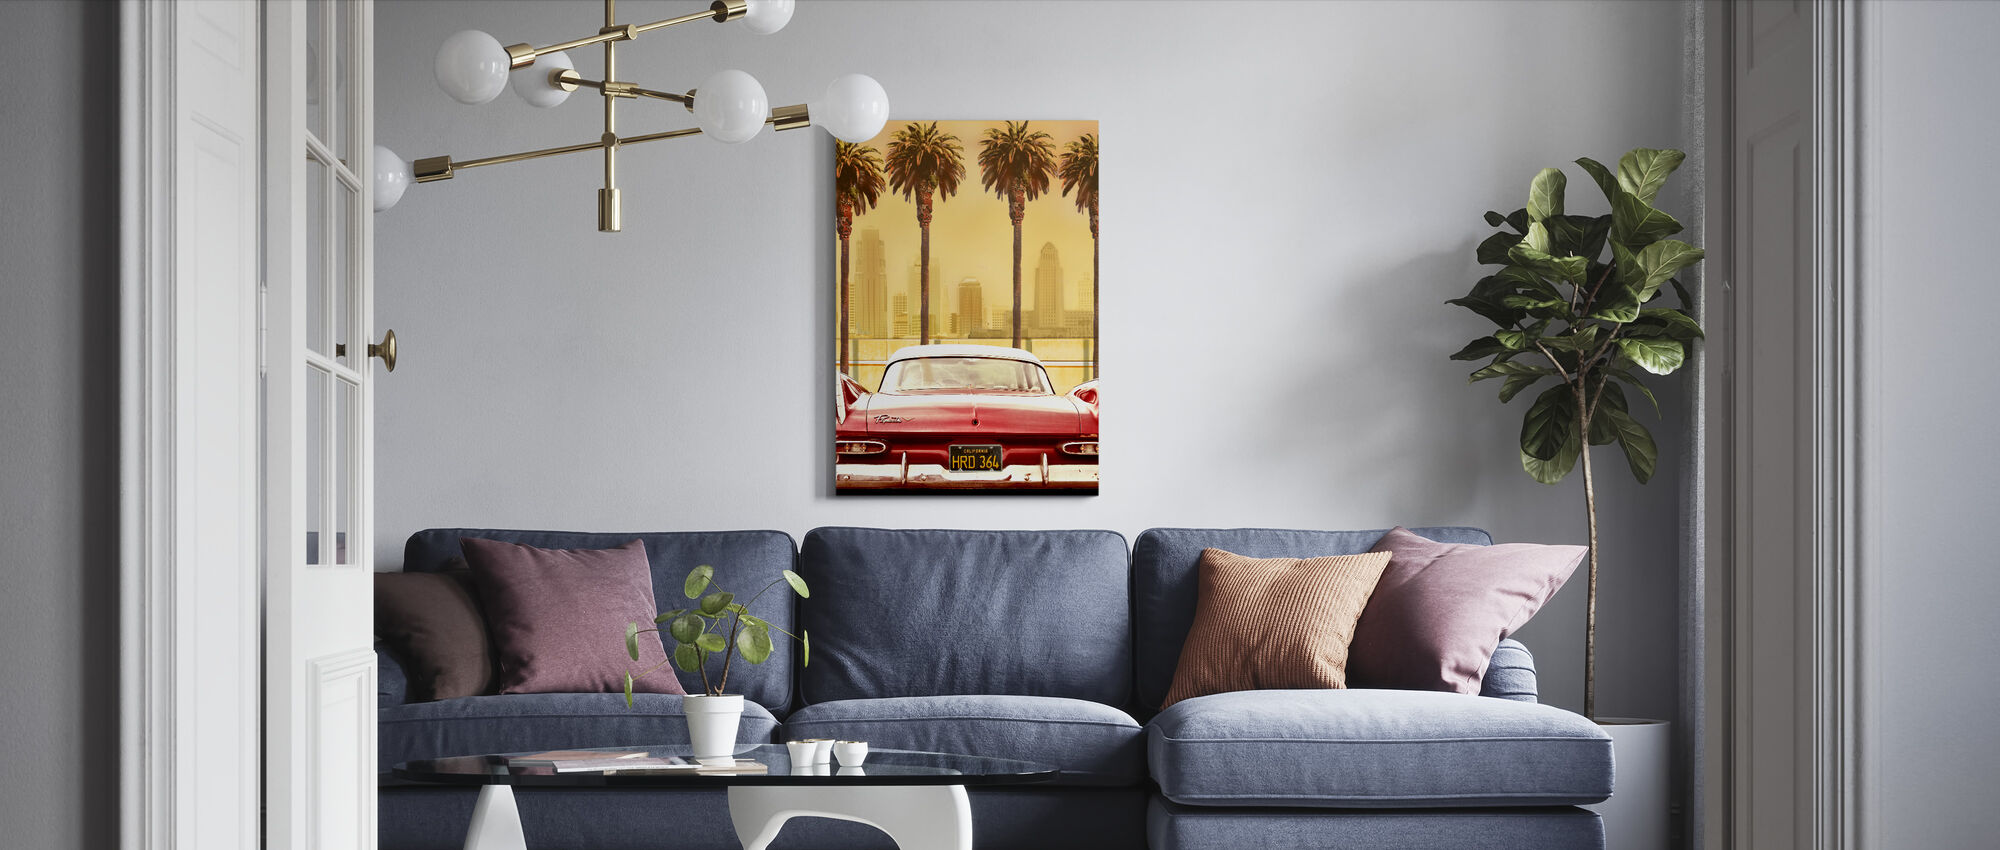 Plymouth Savoy with Palms - Canvas print - Living Room